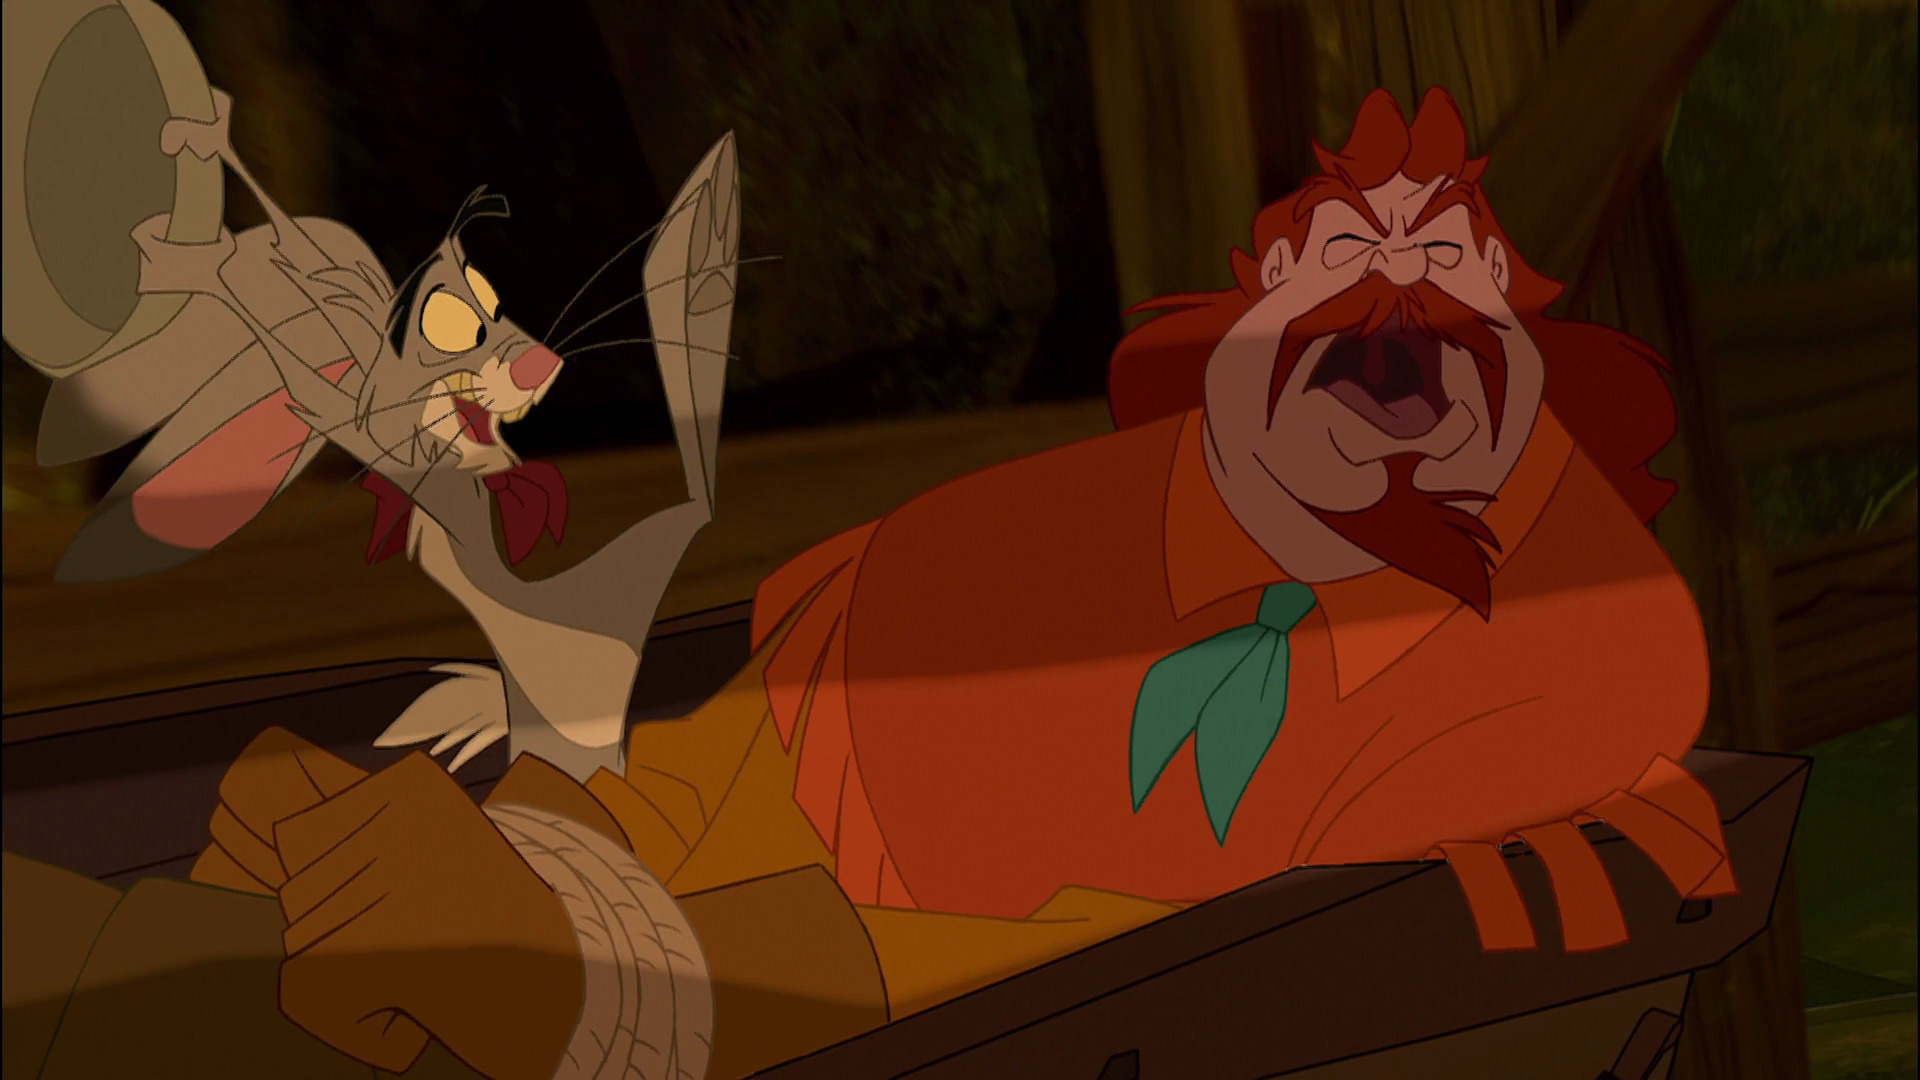 Home-on-the-range-disneyscreencaps Com-6759.jpg